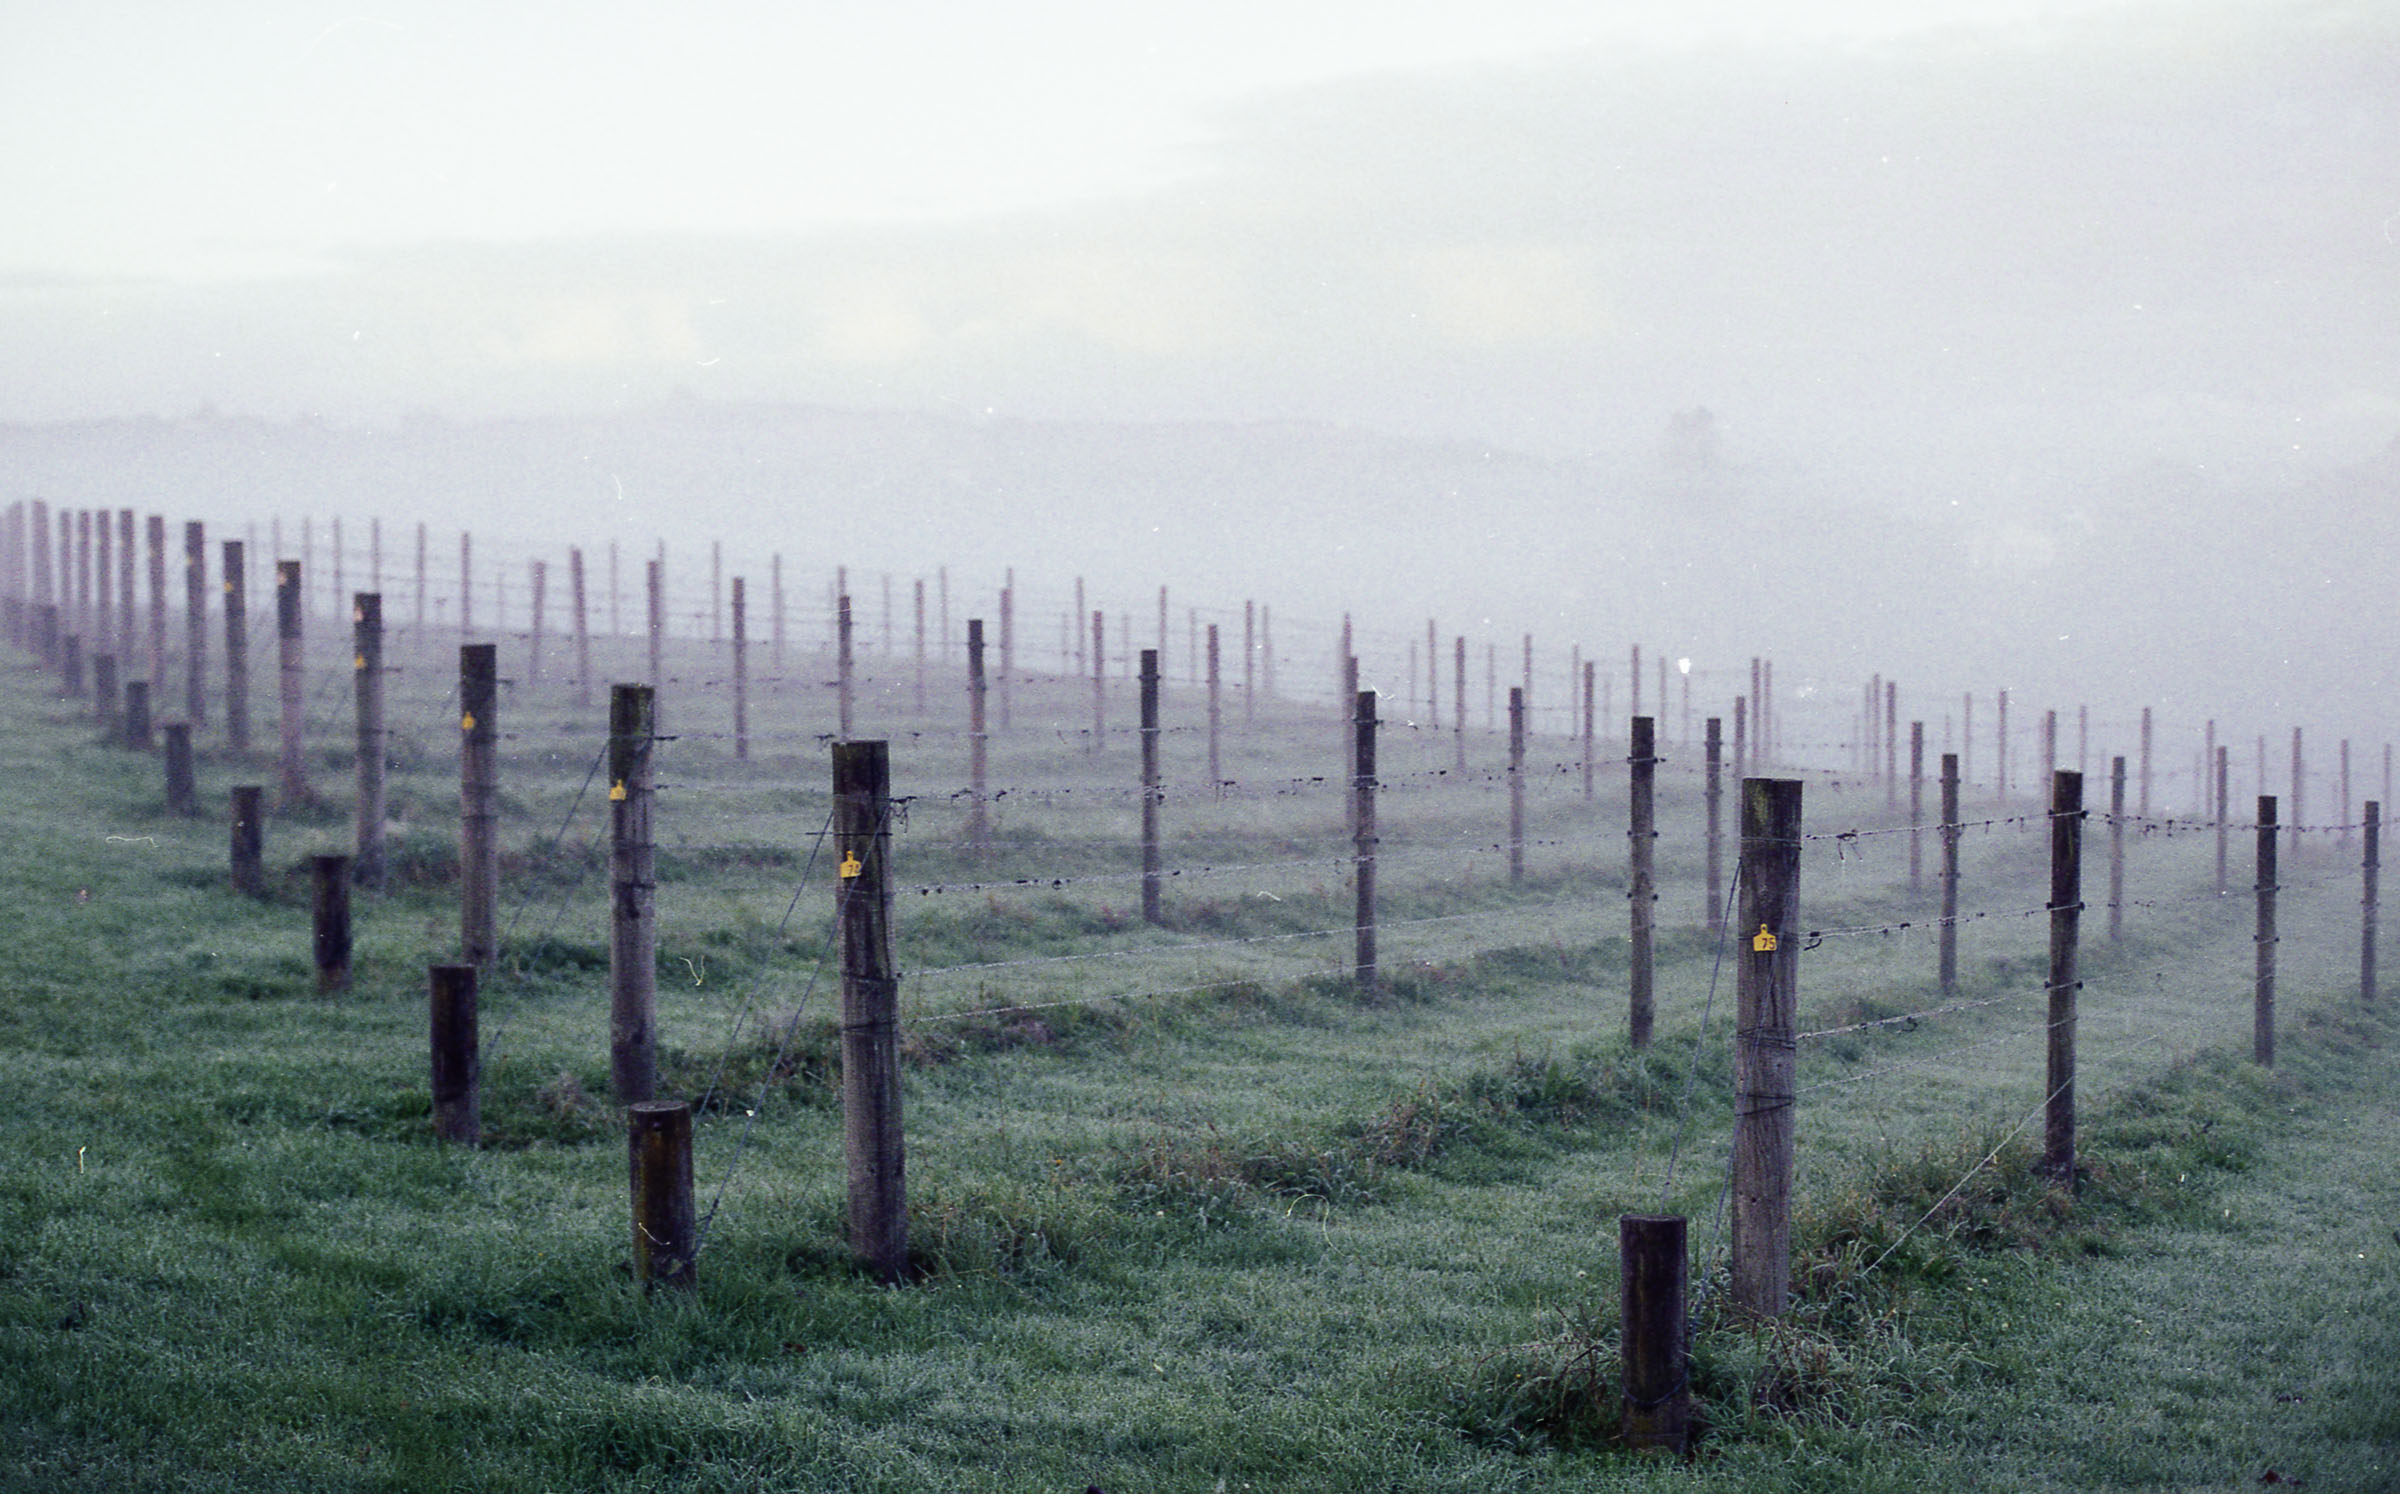 goldie vineyard in fog. copyright leonie wise